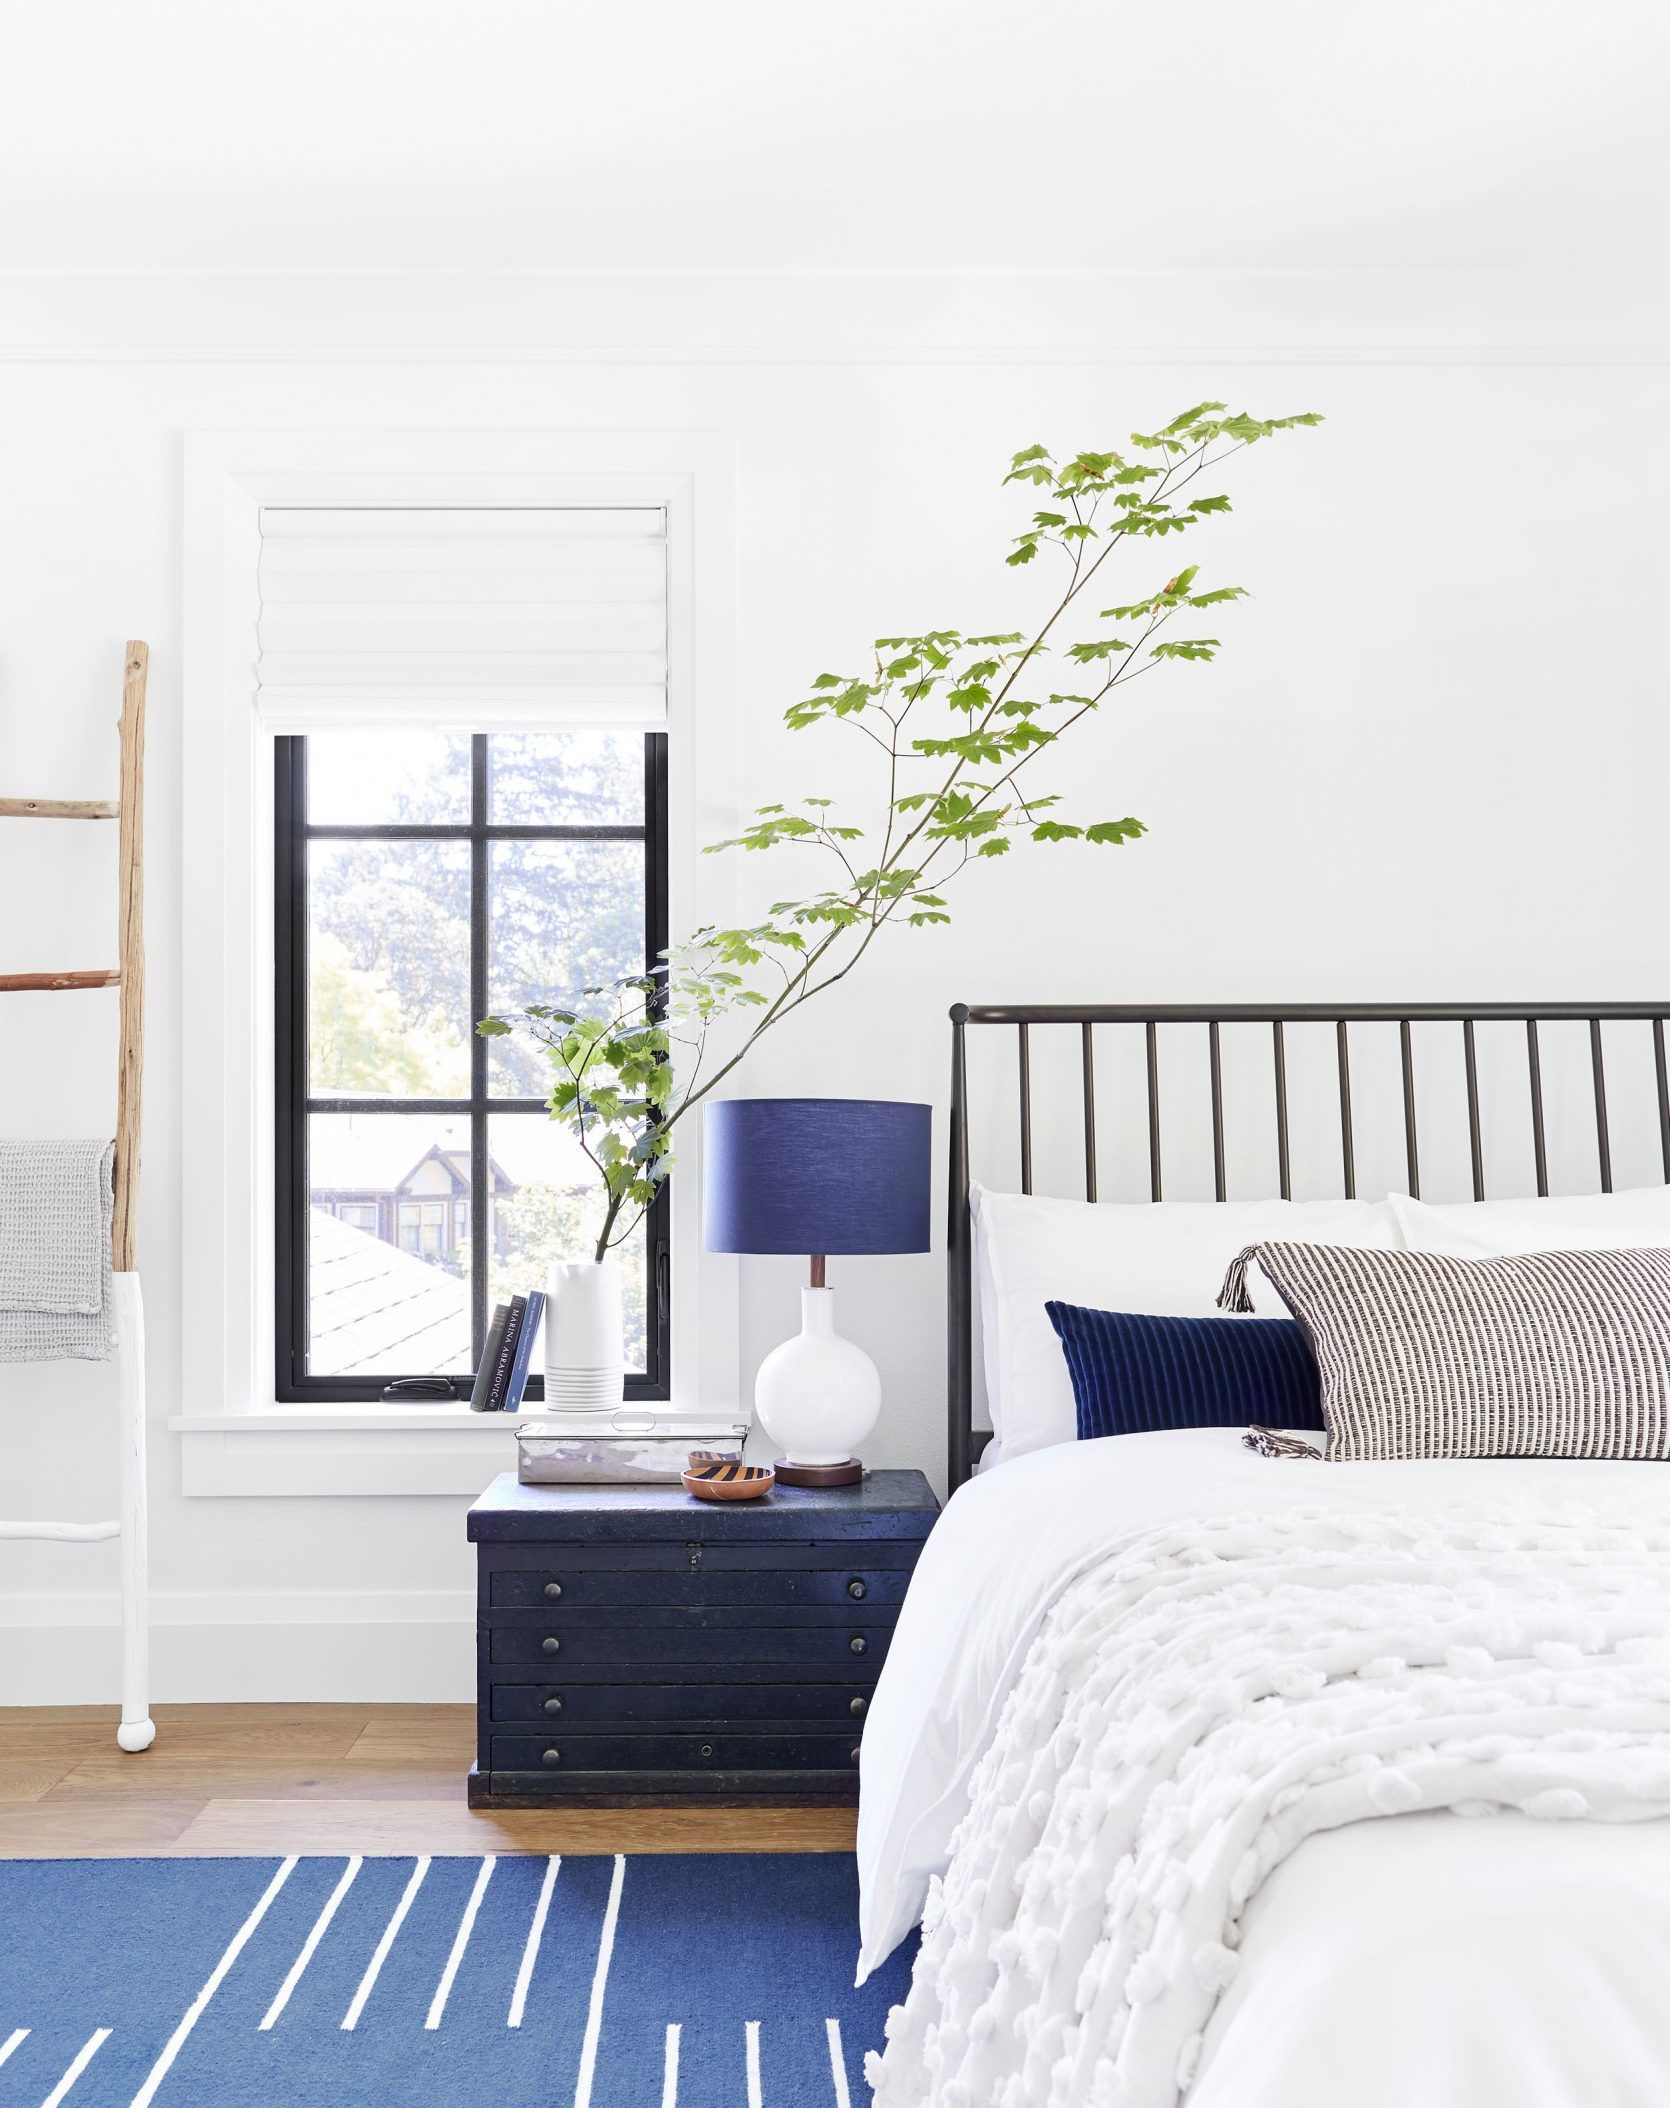 14 Rules To Follow To Design Style The Perfect Bedroom With Images Guest Bedroom Decor Interior Design Bedroom Small Guest Bedroom